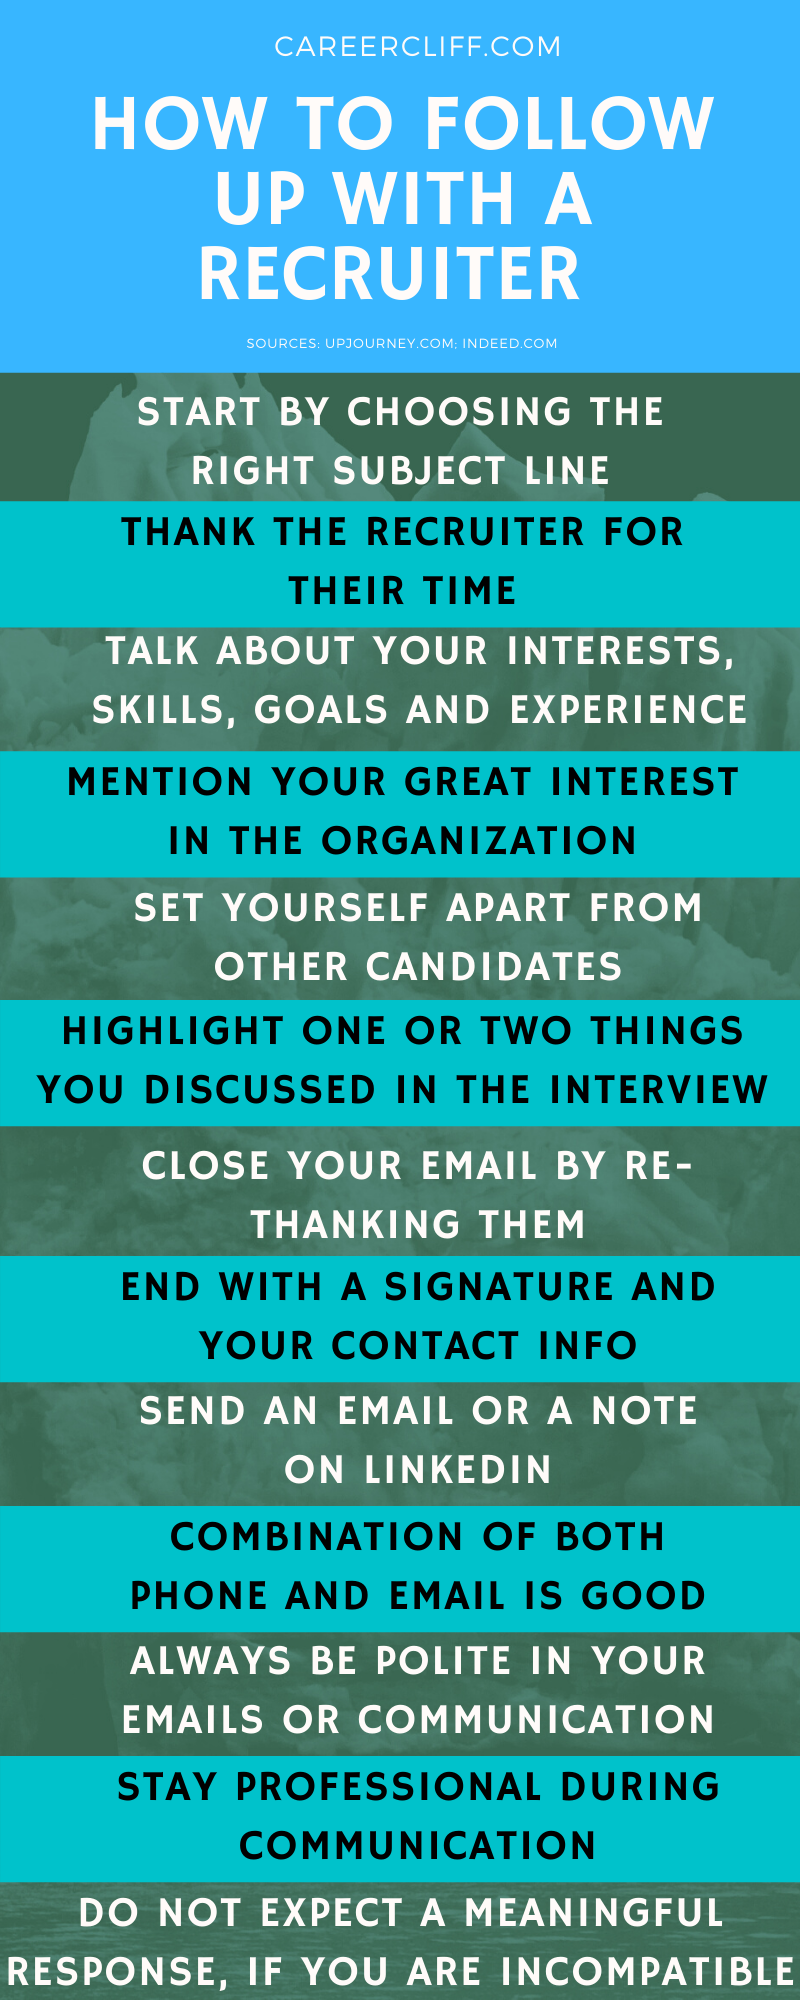 how to follow up after interview how to write a follow up email after an interview how to write a thank you email after an interview how to ask about job application status after interview how to follow up on an interview how to write a thank you letter after an interview how to ask interview status through email how to follow up on a job interview how to follow up with a recruiter how to thank someone for an interview how to follow up after a job interview how to send a thank you email after an interview how to send a follow up email after interview how to write a follow up interview email how to write a thank you follow up interview letter how to write a follow up email for a job how long after an interview should you follow up how to ask interview status how soon to follow up after interview how to follow up after a phone interview how long after interview to follow up how long to follow up after interview how to write an interview thank you how to thank for an interview how to send a follow up email for a job how to write an interview thank you email how long to wait after interview to follow up how to write thank you note after interview how do you write an email asking for an interview how to email after interview how to say thank you for an interview how long should you wait to follow up after an interview how to write a post interview thank you email how to send a follow up interview email how to thank someone after an interview how long after an interview should i follow up how to write an email after an interview how to follow up after an interview email how to send an email after an interview how to write a thank you email after a phone interview how to send an interview follow up email how to send a thank you note after an interview how soon after an interview should you follow up how to write a follow up email after phone interview how to ask interview feedback how to write a follow up email to an interview how to send a follow up email to a recruiter h